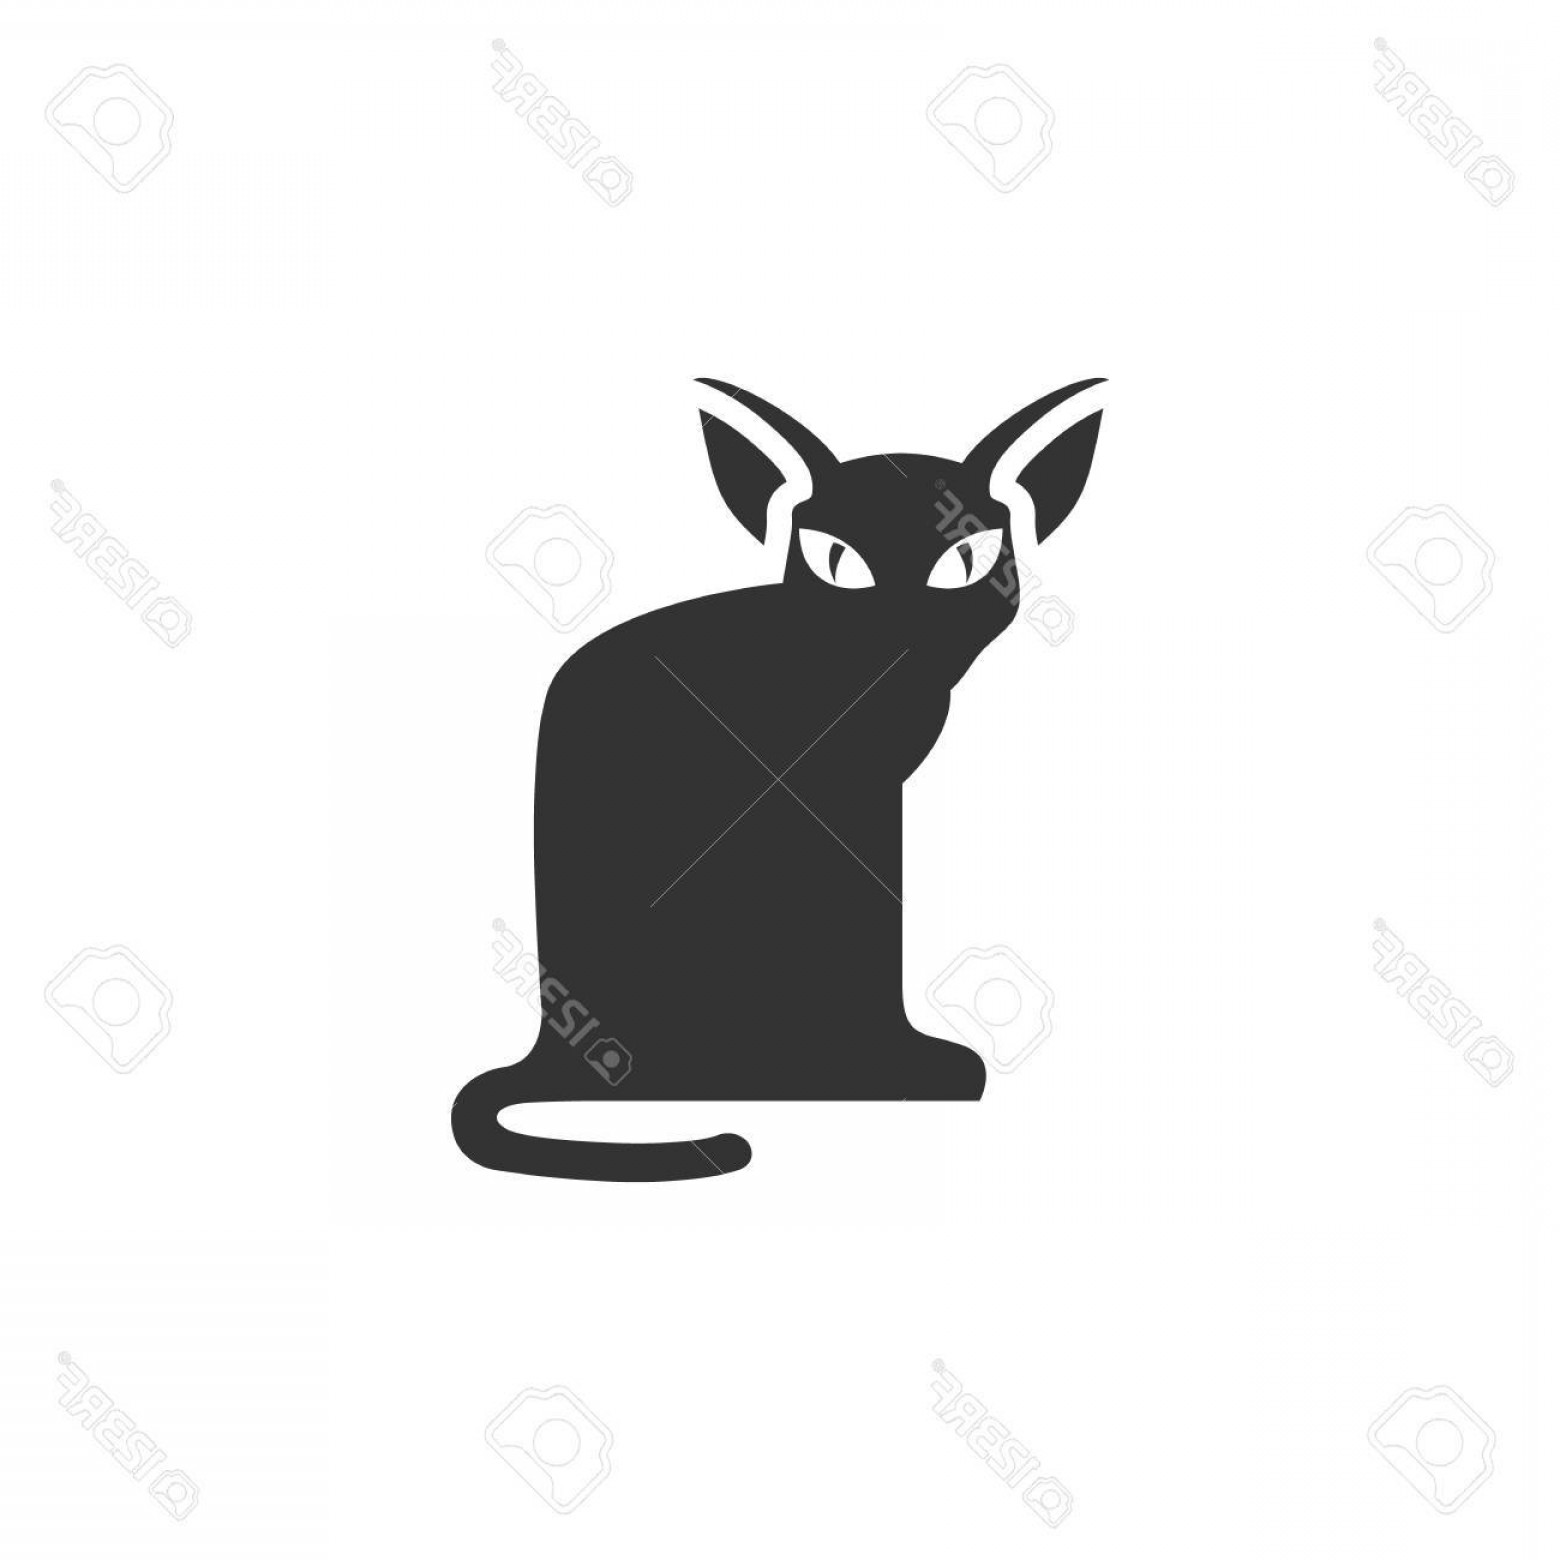 Malee Cat Head Silhouette Vector: Photostock Vector Cat Icon In Single Color Animal Halloween Symbol Dark Black Kitten Fear